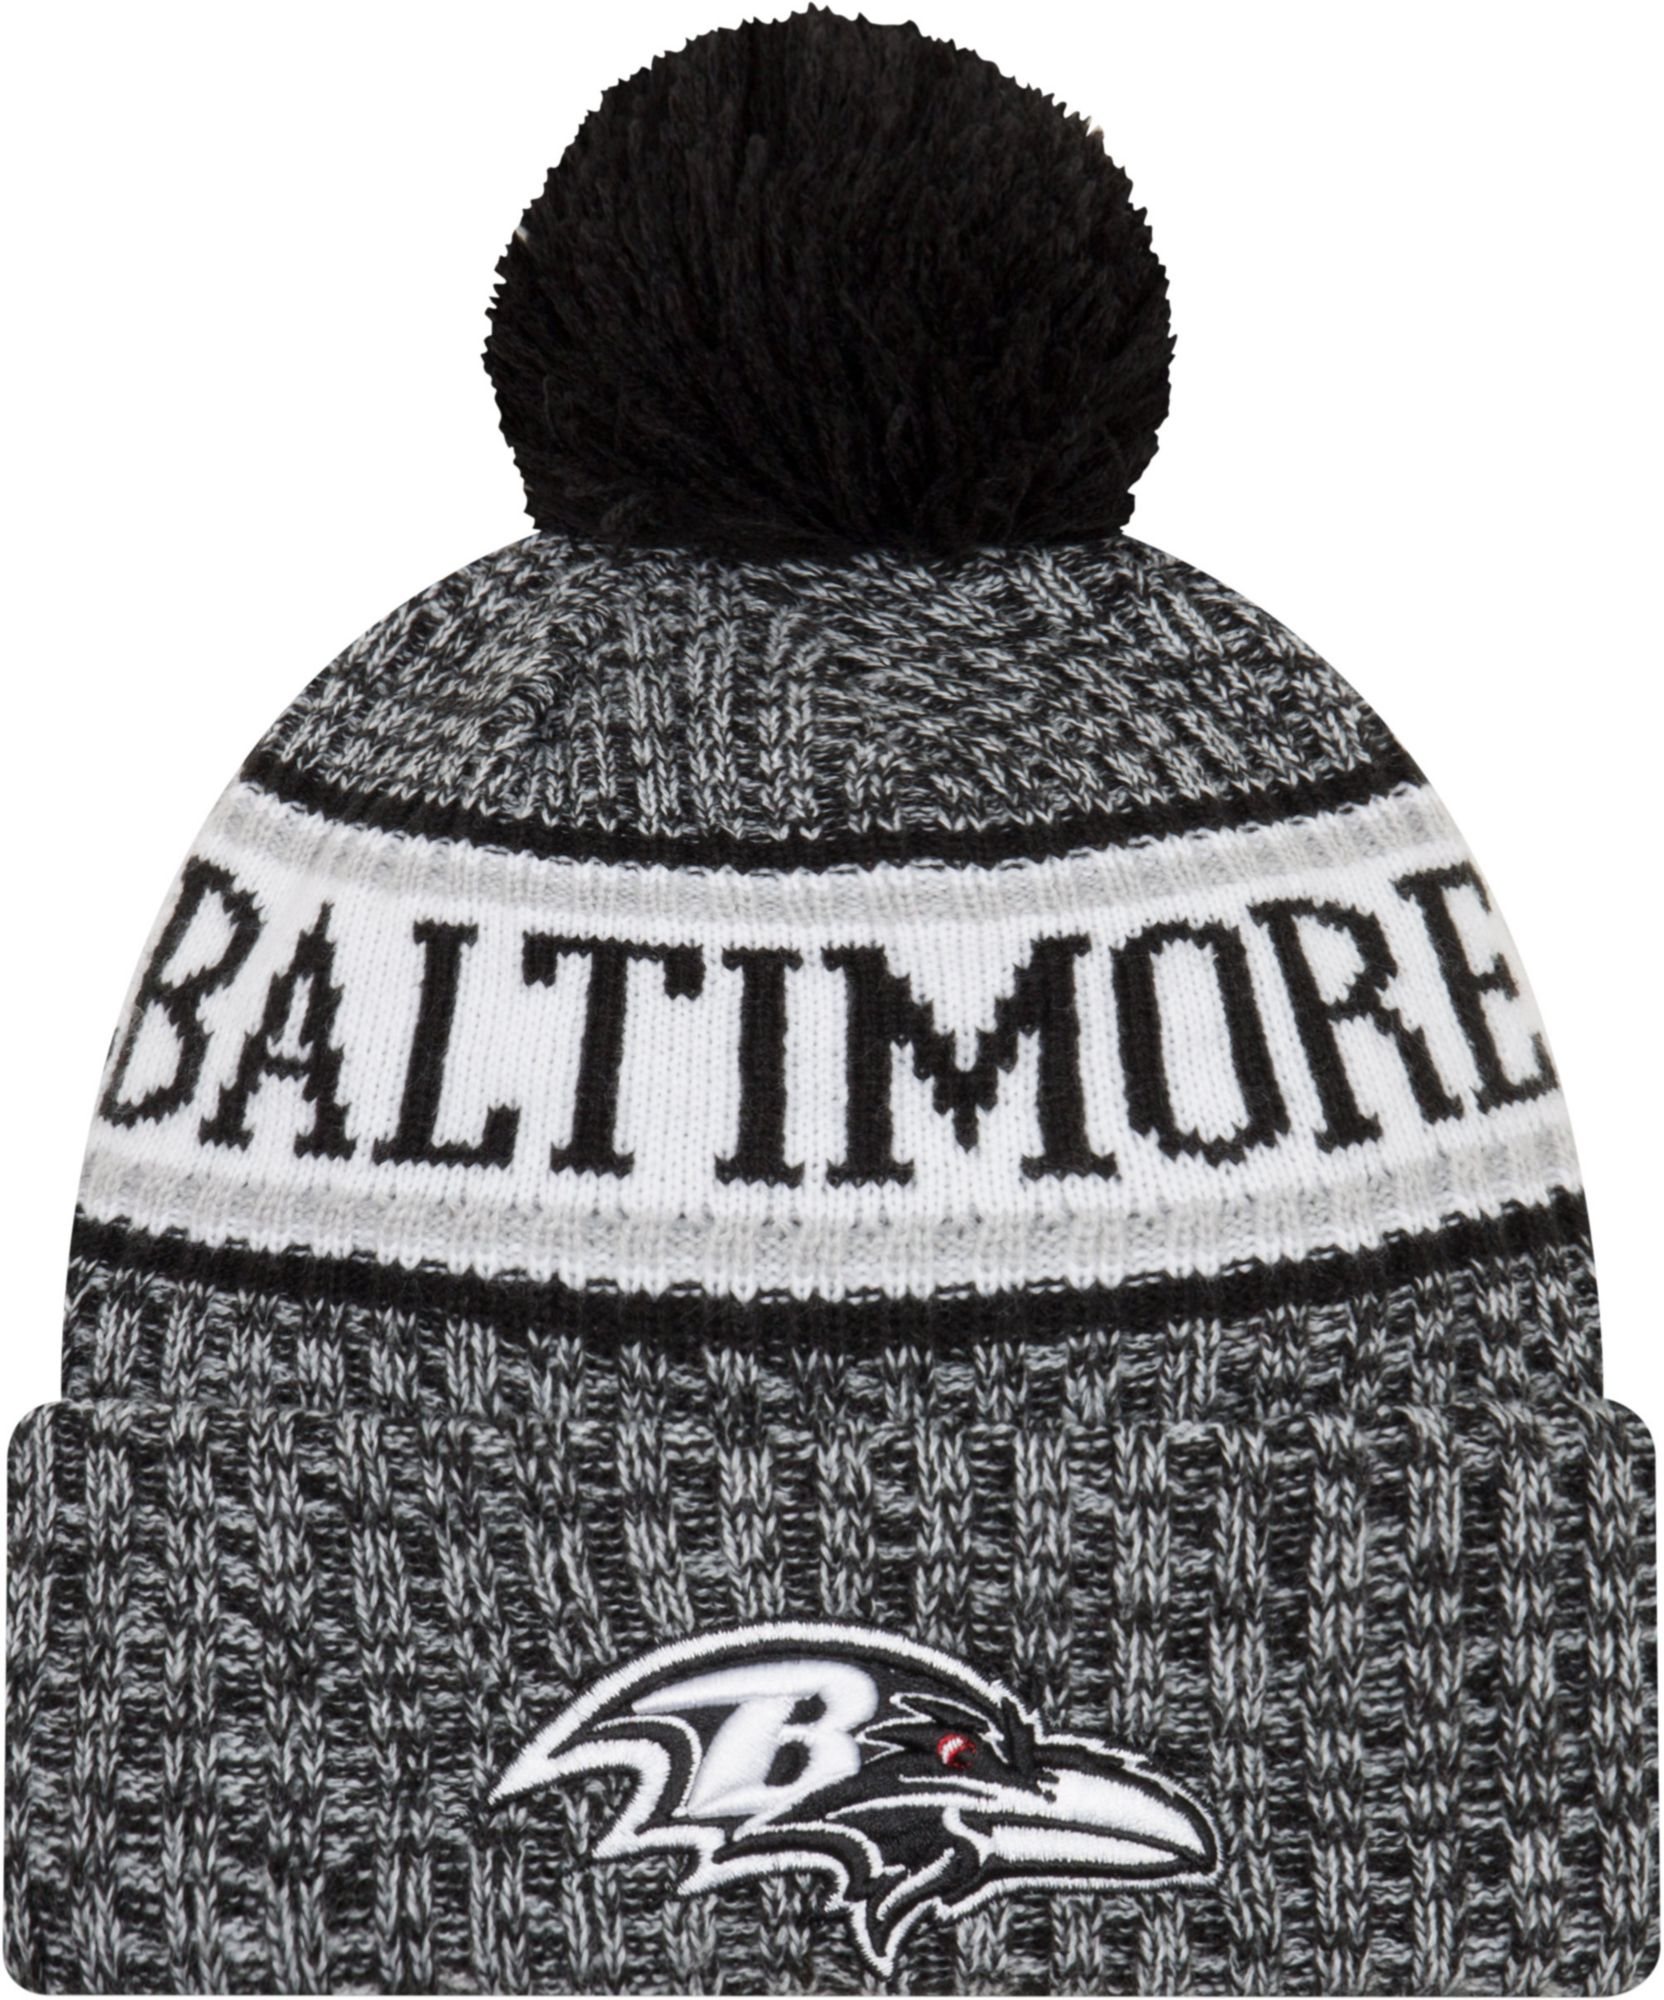 4e9757ff624 ... 2018 nfl sideline cold weather official td knit hat low price new era  mens baltimore ravens sideline cold weather reverse black sport knit 2e53c  8d0e6 ...